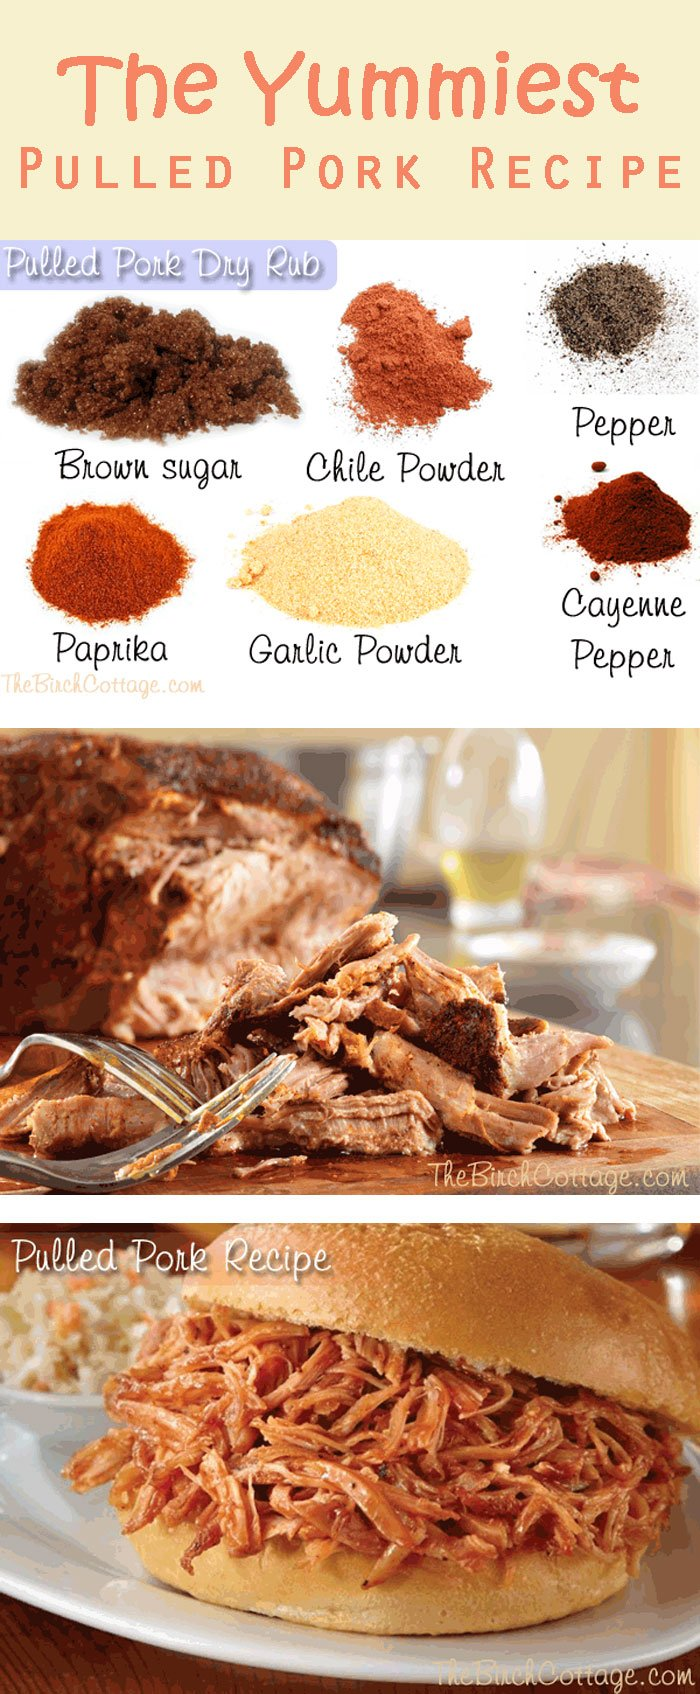 The Yummiest Ever Pulled Pork Recipe